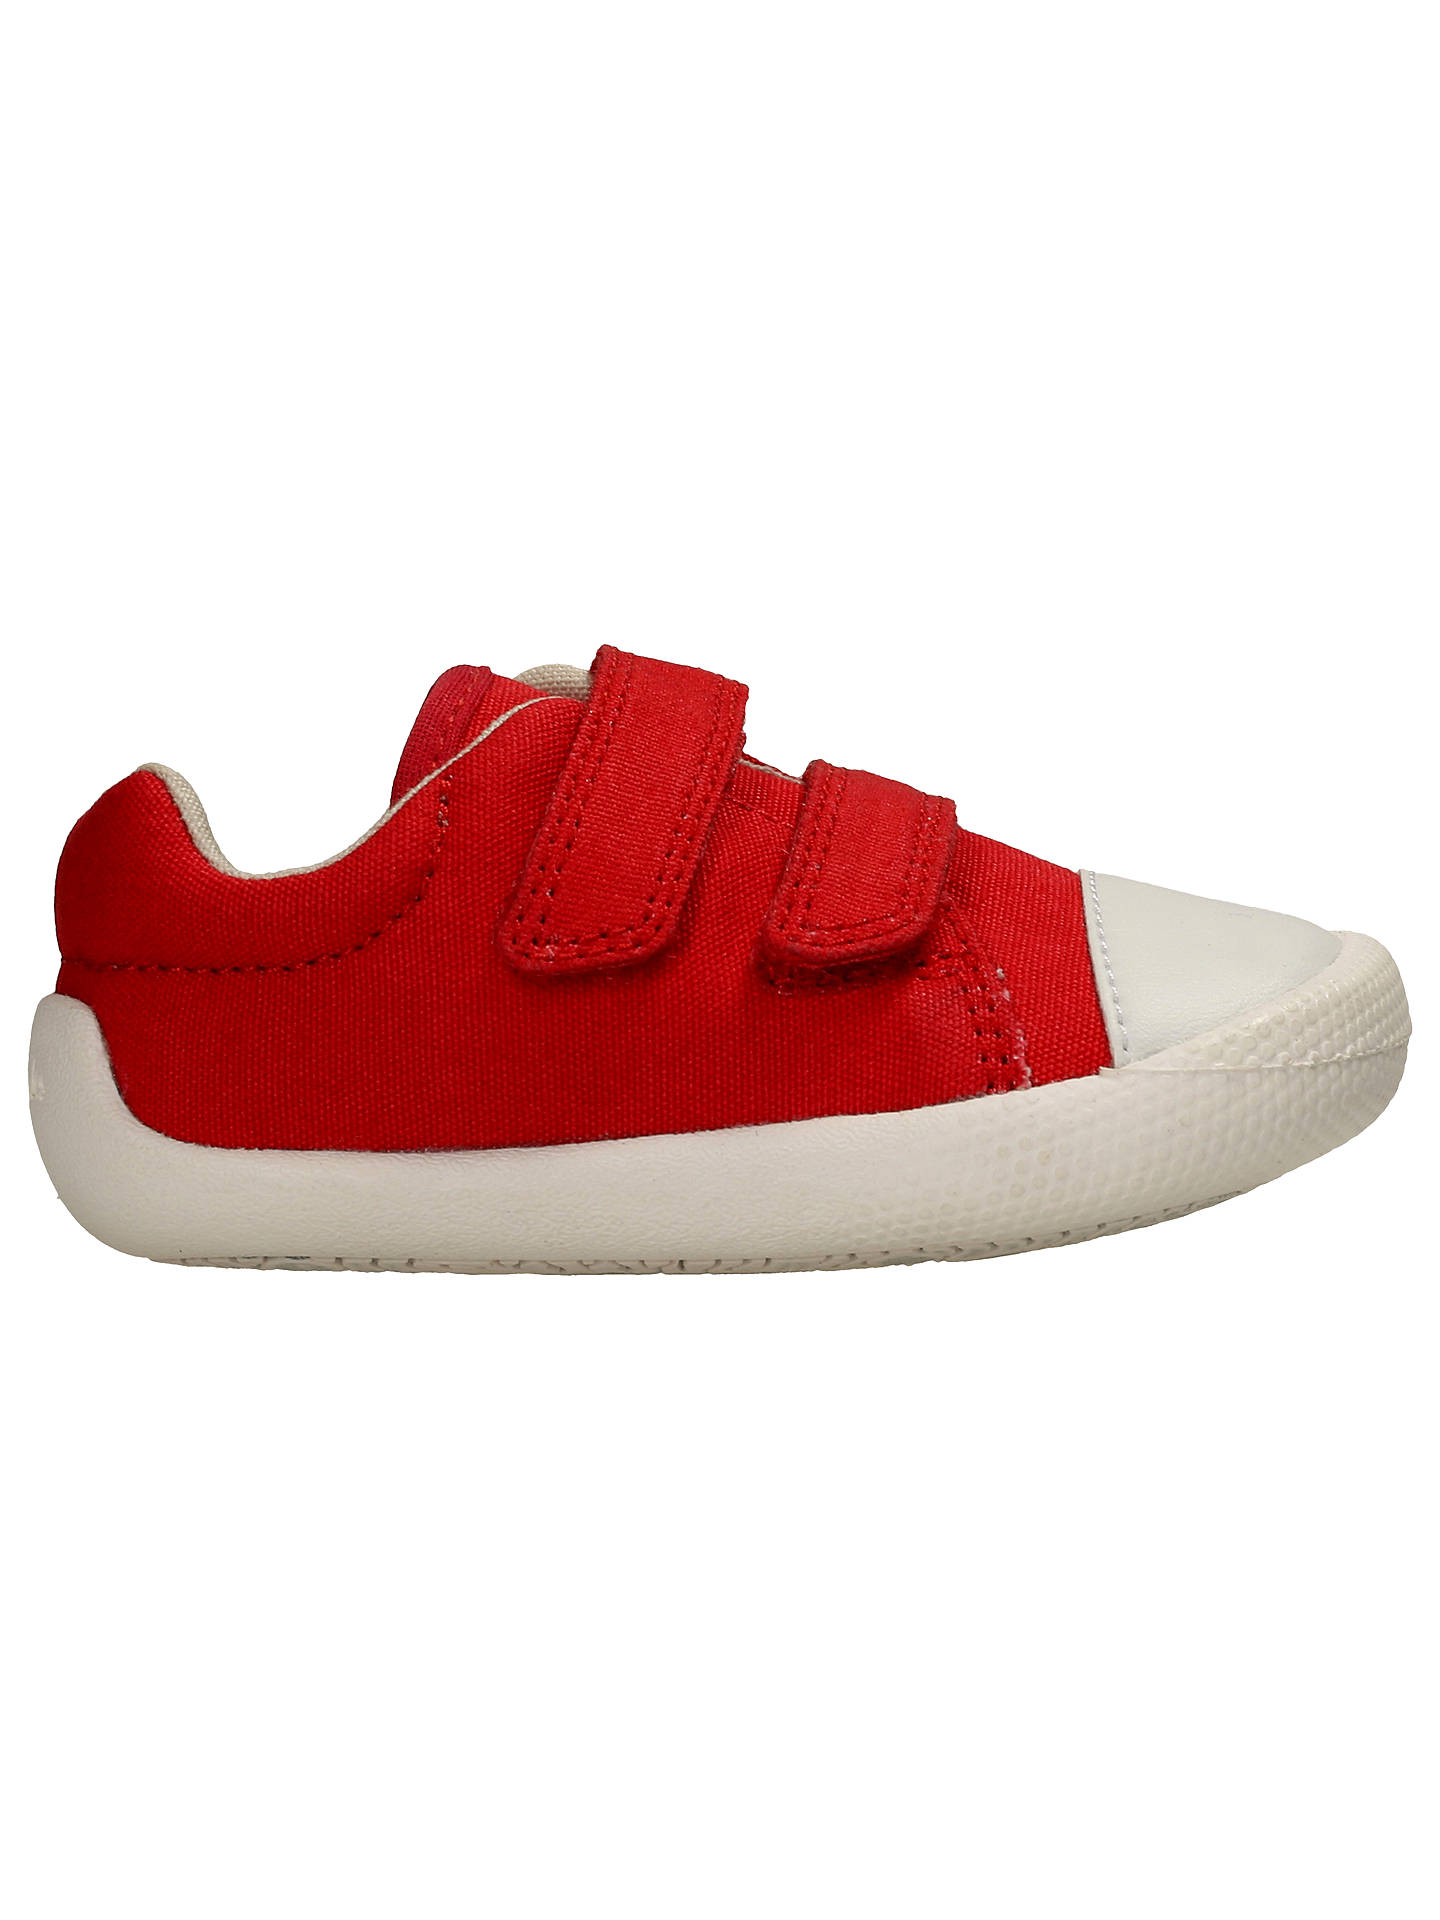 BuyClarks Tiny Pebble Canvas Pre-Walker Shoes, Red, 3F Jnr Online at johnlewis.com